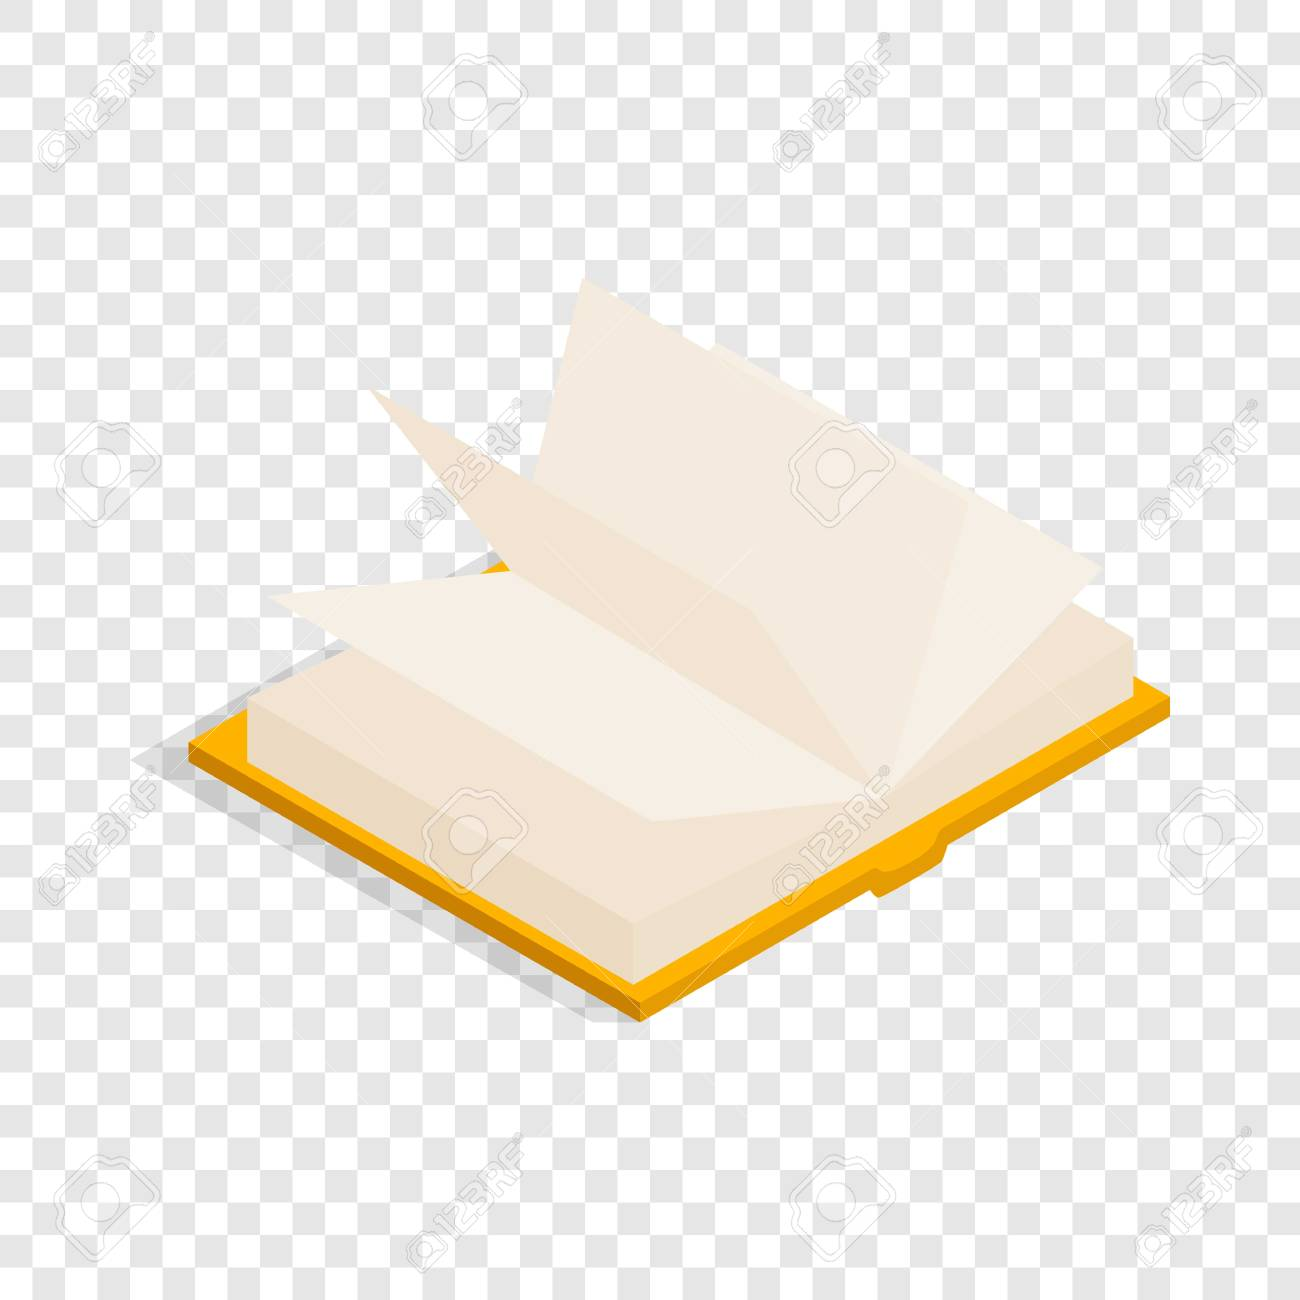 yellow open book isometric icon 3d on a transparent background